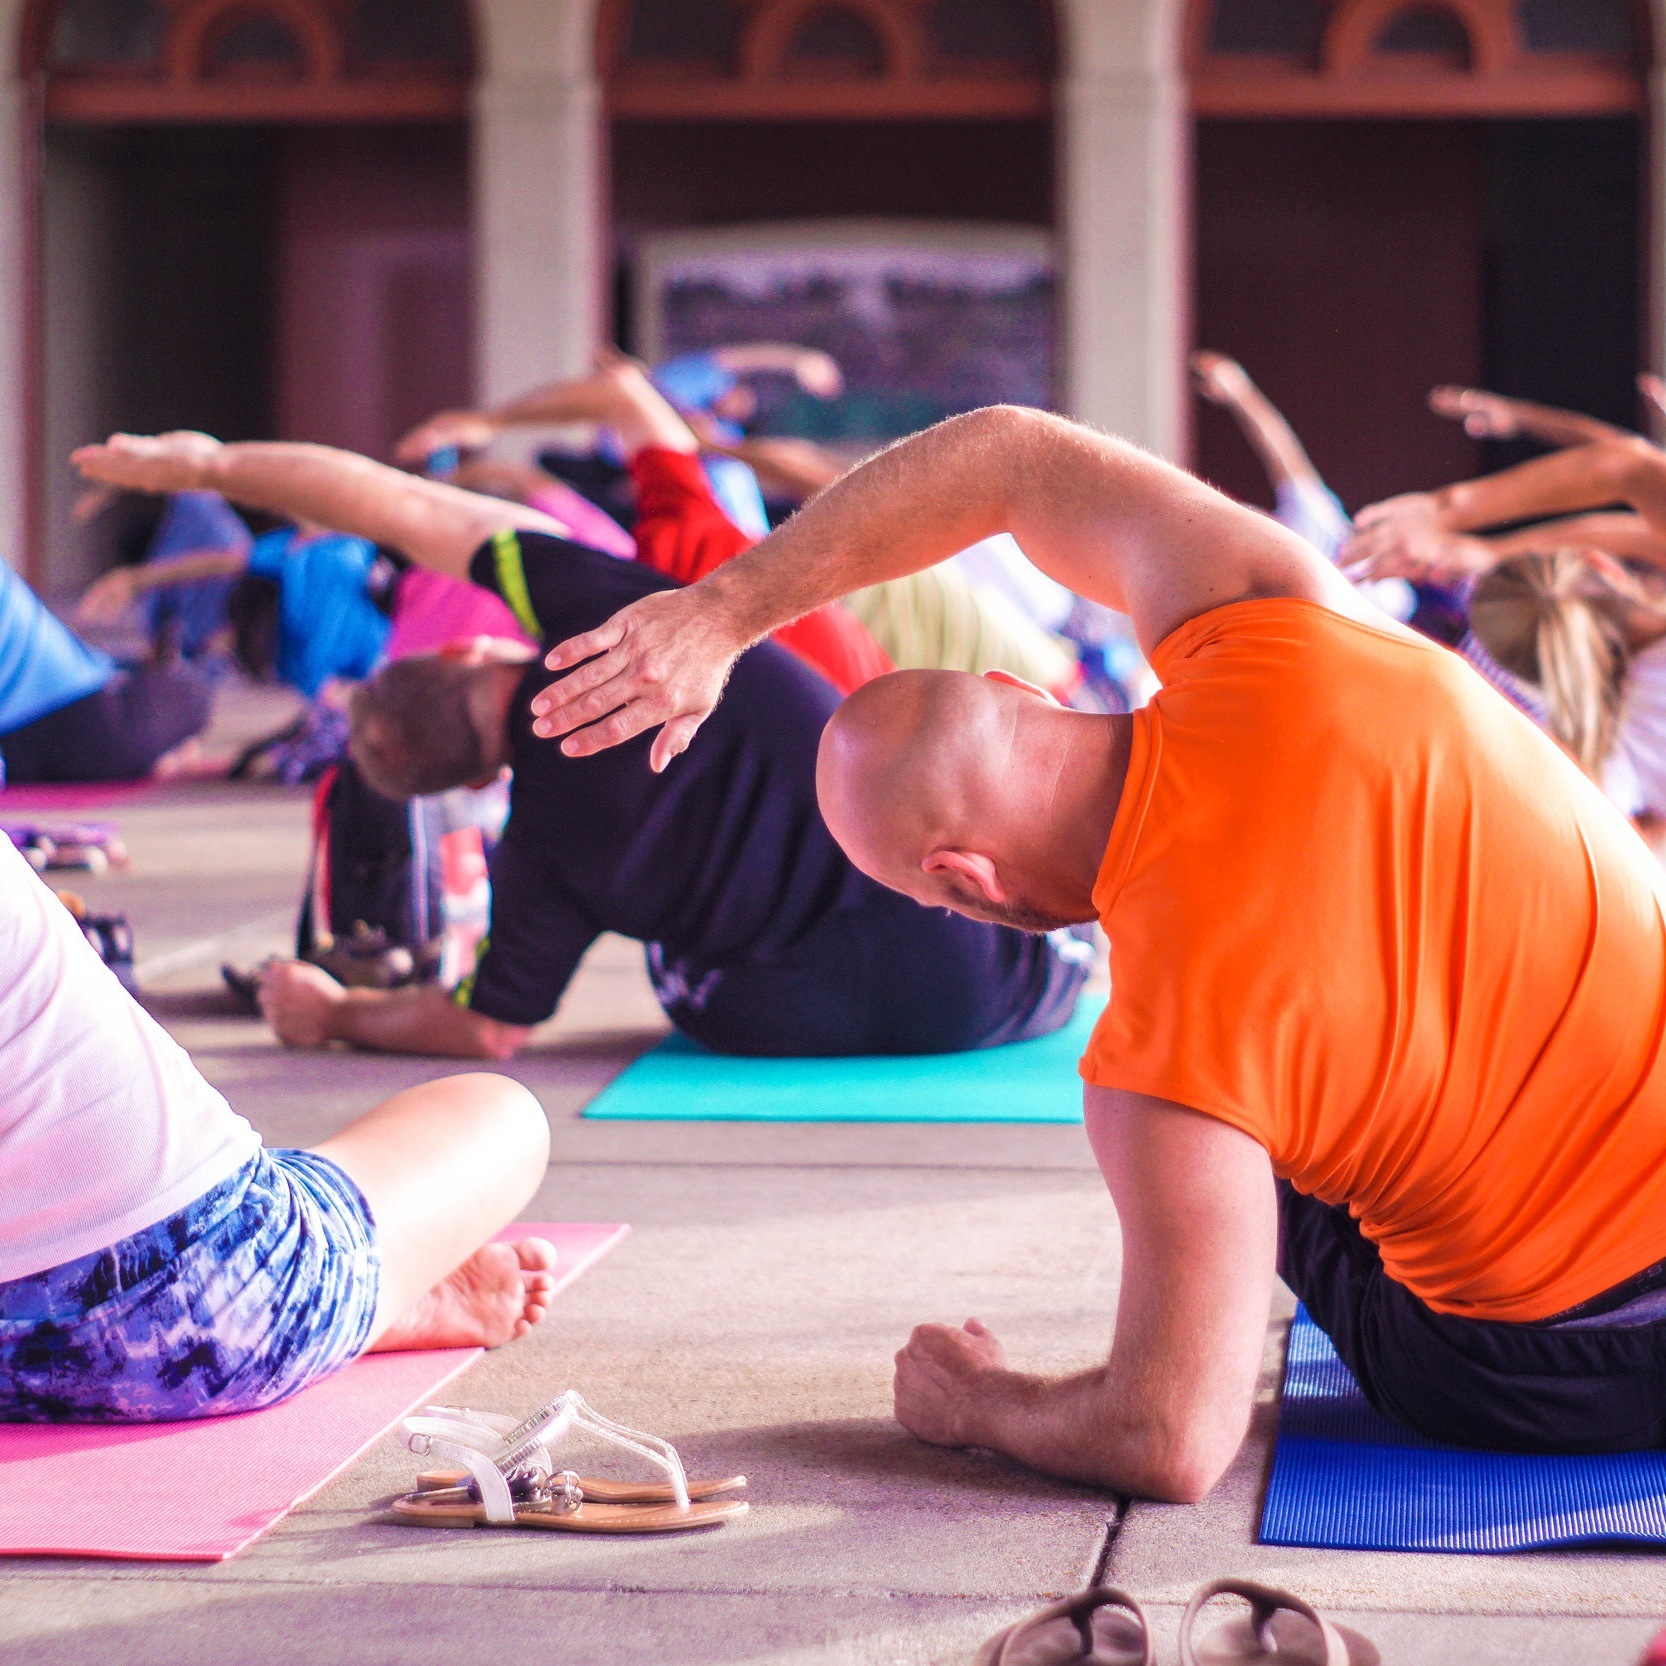 GENTLE YOGA—Hampden Marketplace   This class incorporates flowing movements and poses designed to improve flexibility, muscle endurance, balance, breathing and development of mind and body awareness. Seated and standing postures and some mat work (optional). Please provide your own yoga mat.